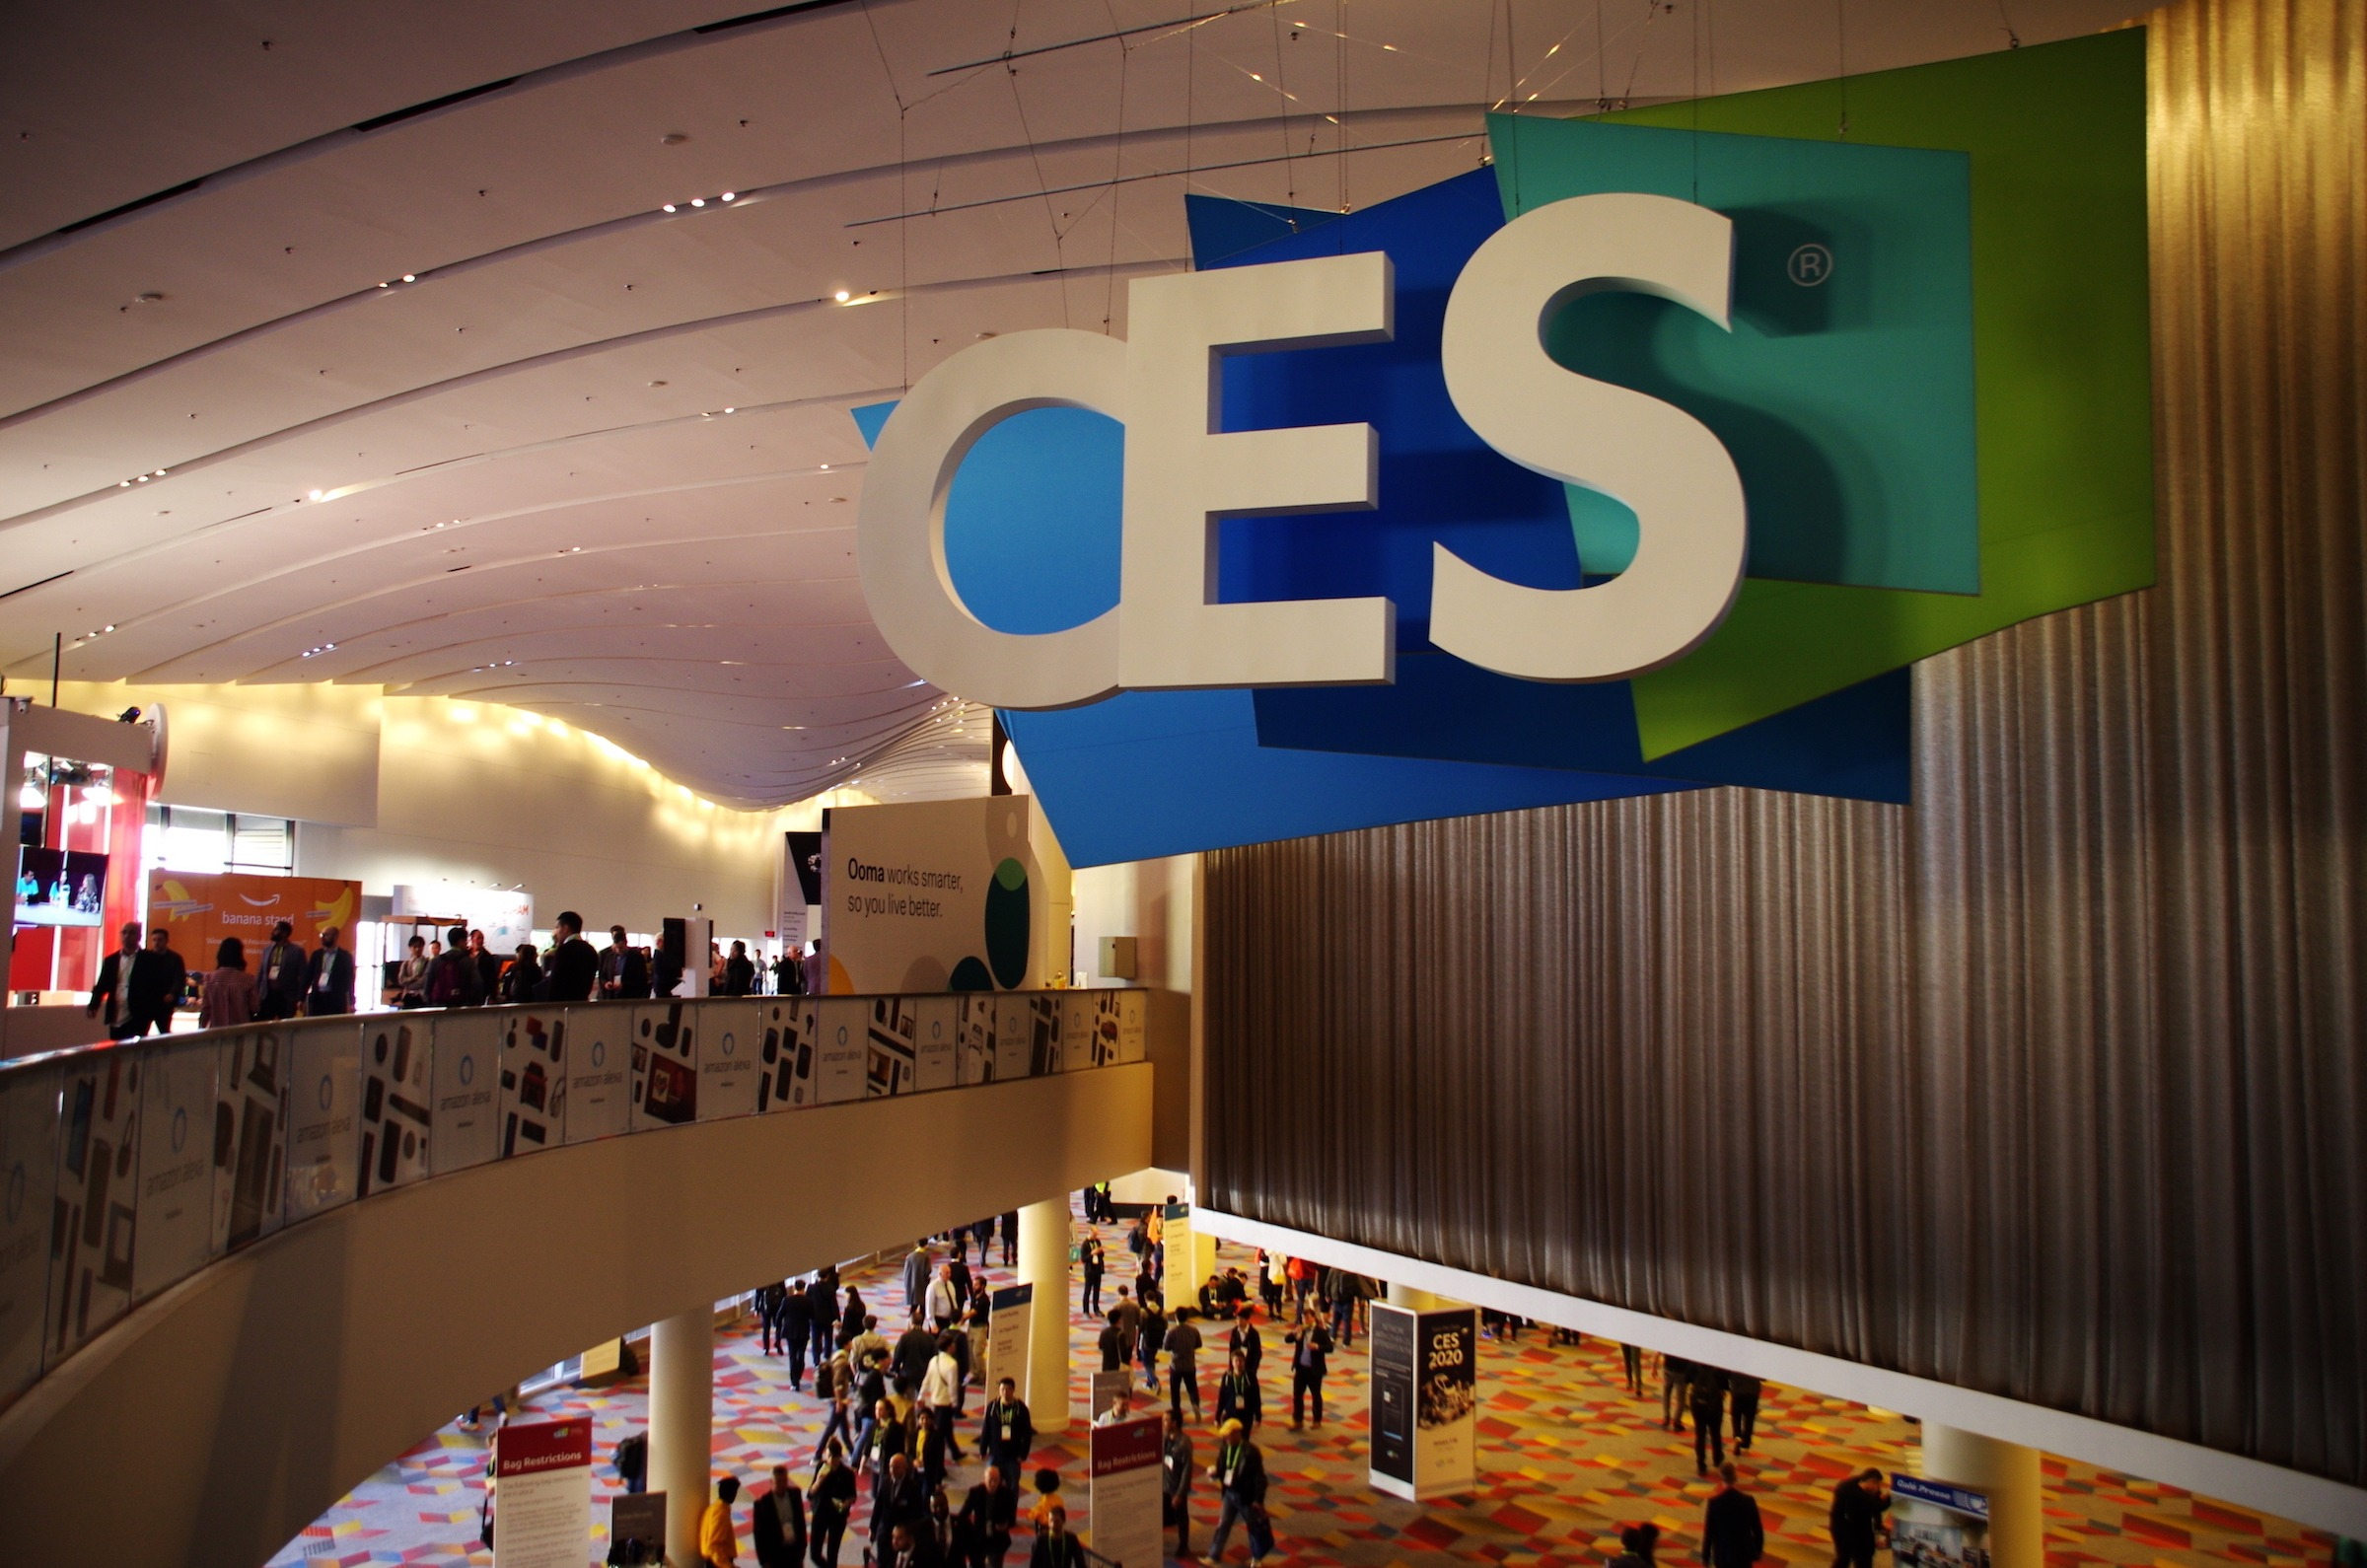 CES2019会場 Sands Expo & Convention Centerにて